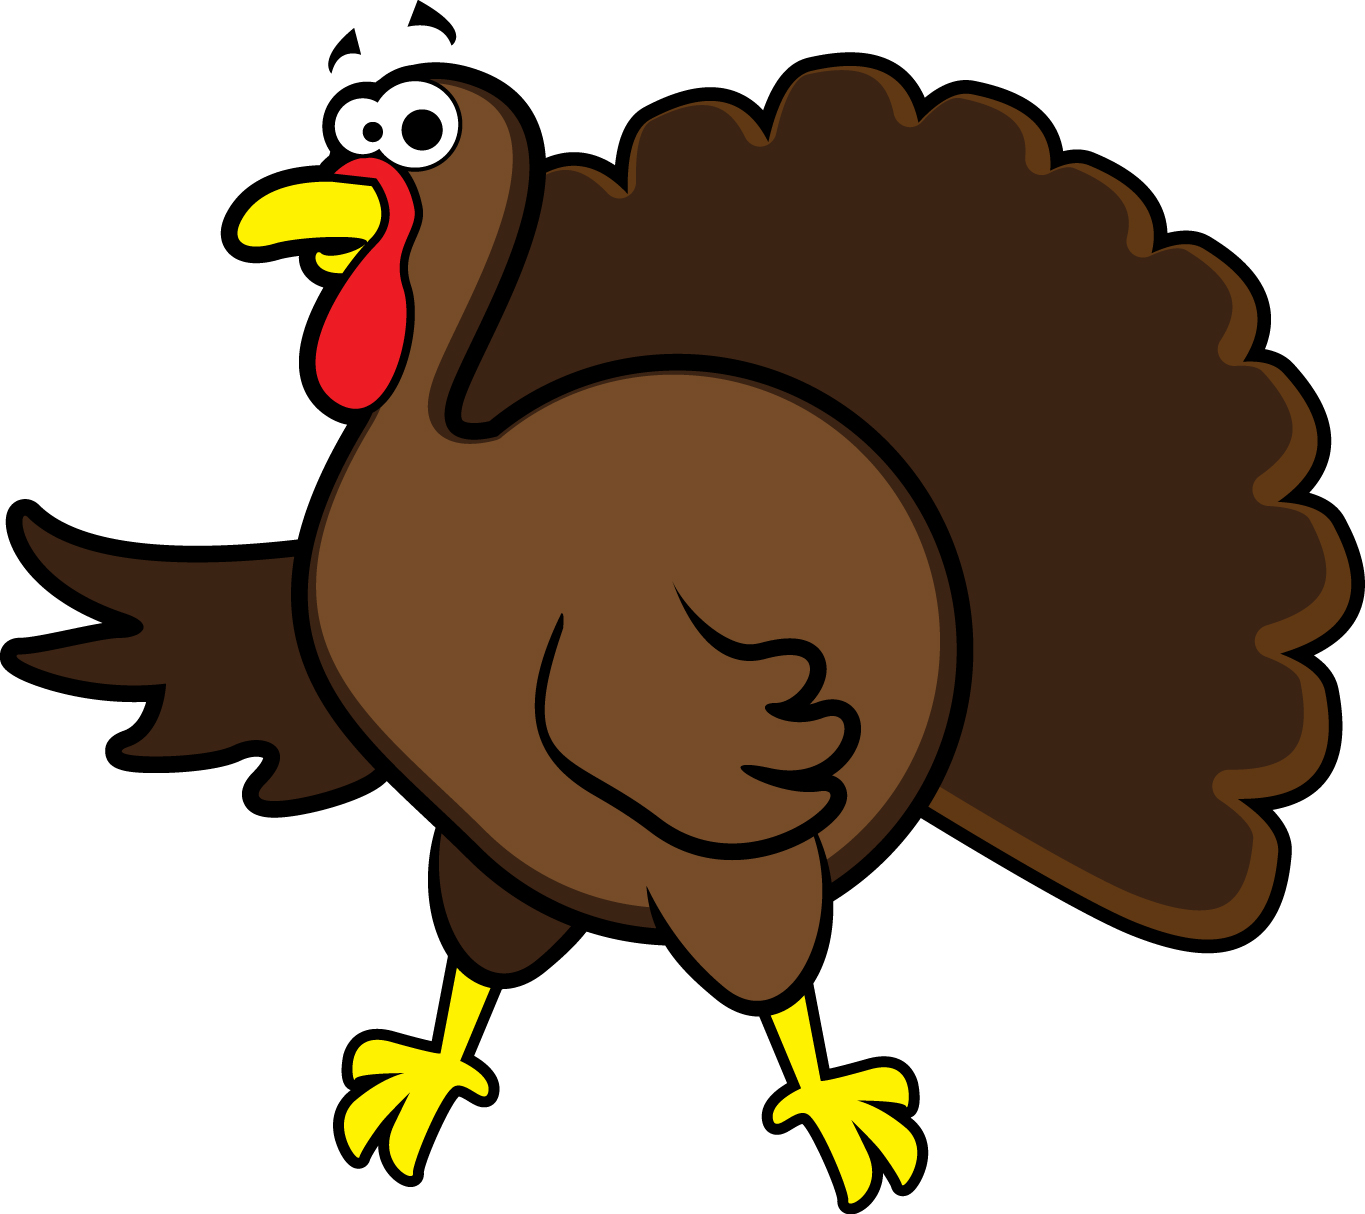 Turkey clip art pictures tumundografico